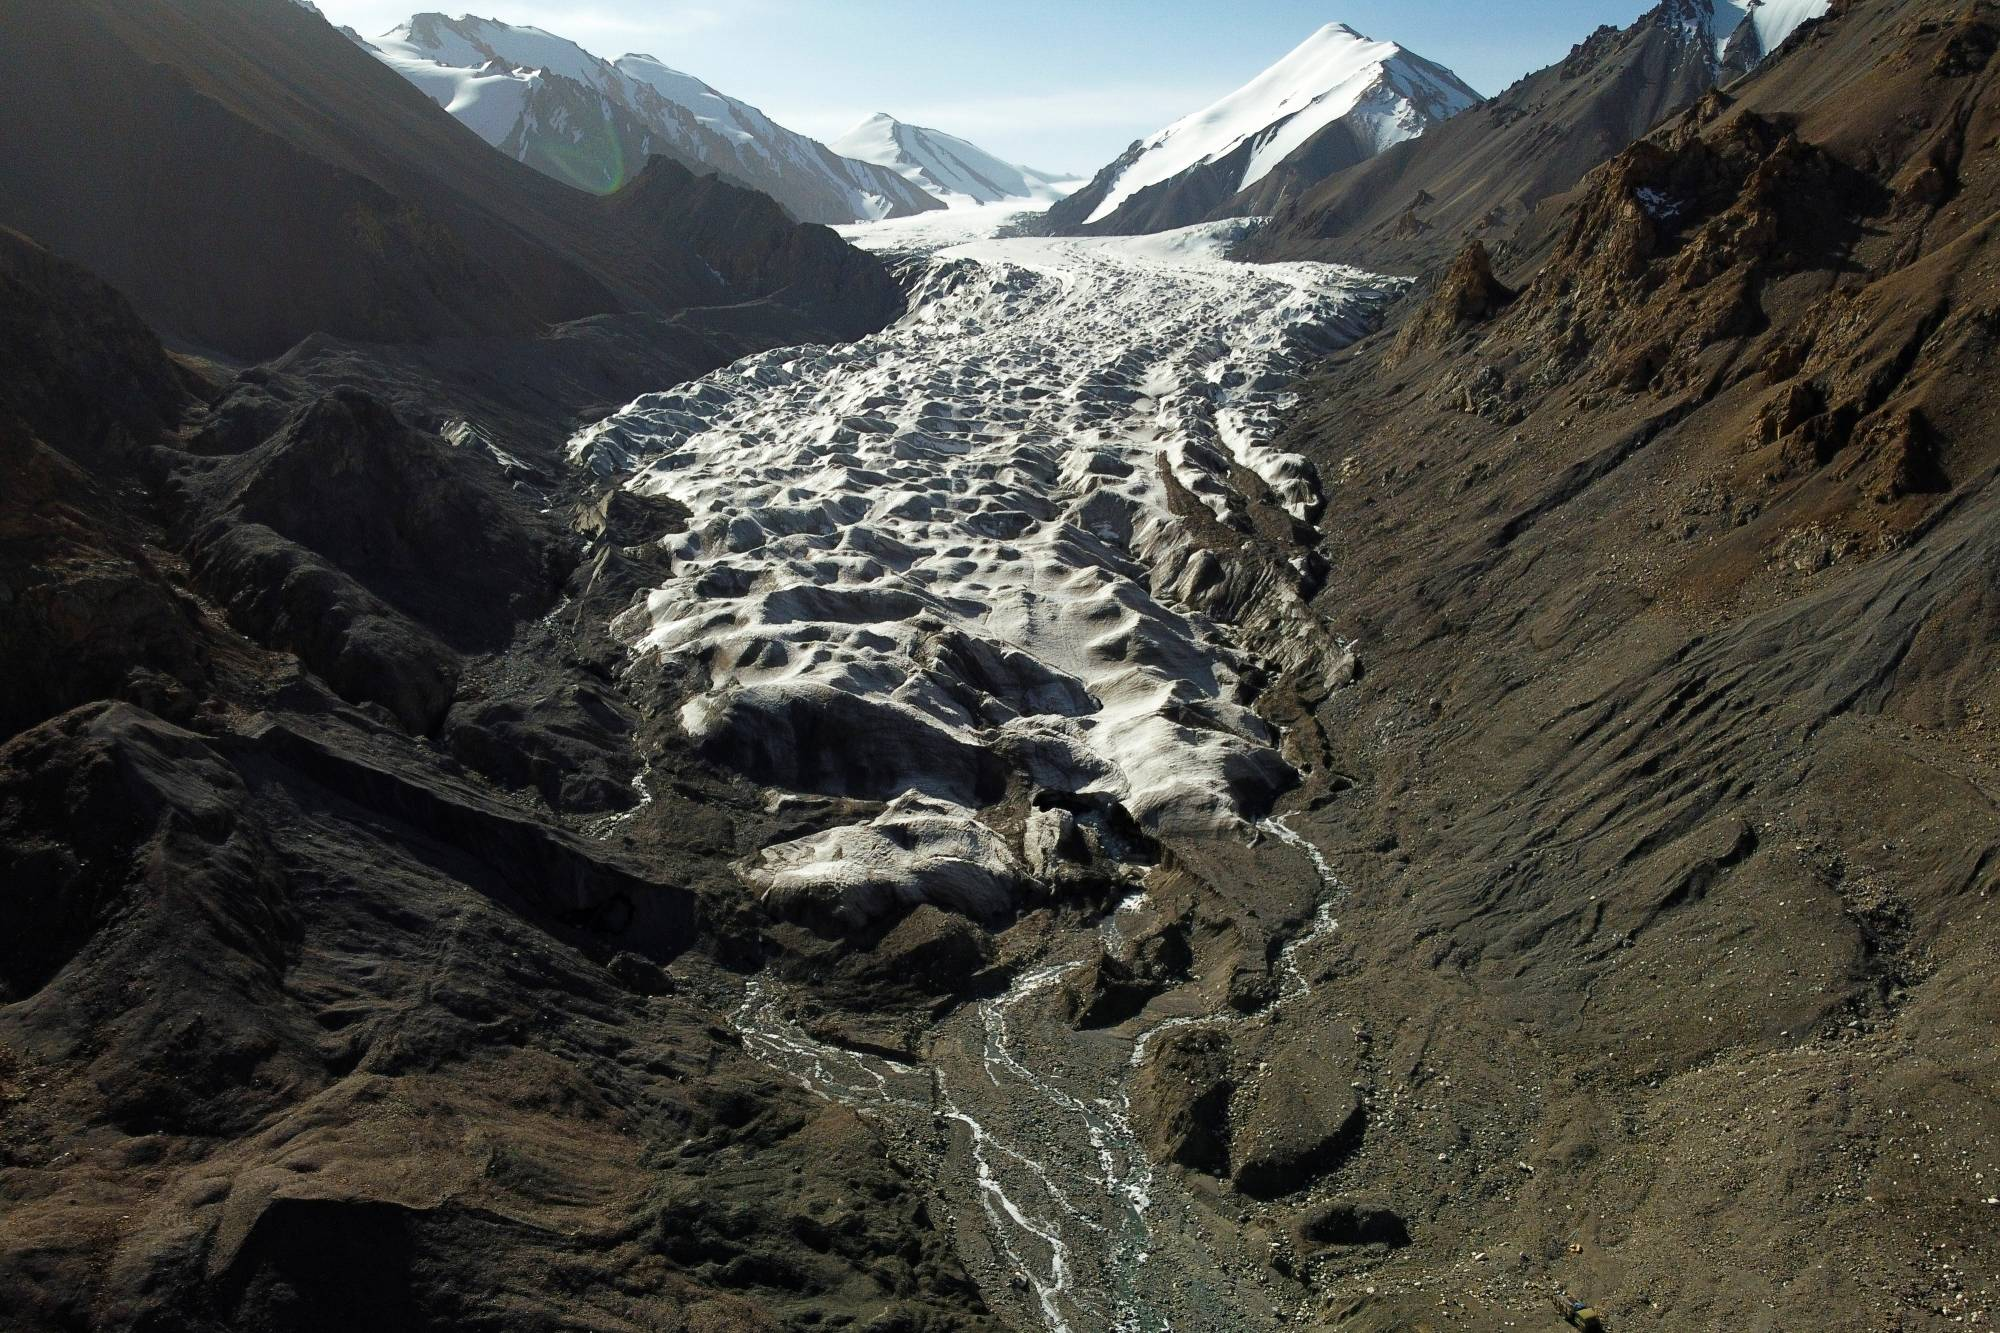 Meltwater from the Laohugou No. 12 glacier flows through the Qilian mountains in Subei Mongol Autonomous County in China's Gansu province. | REUTERS